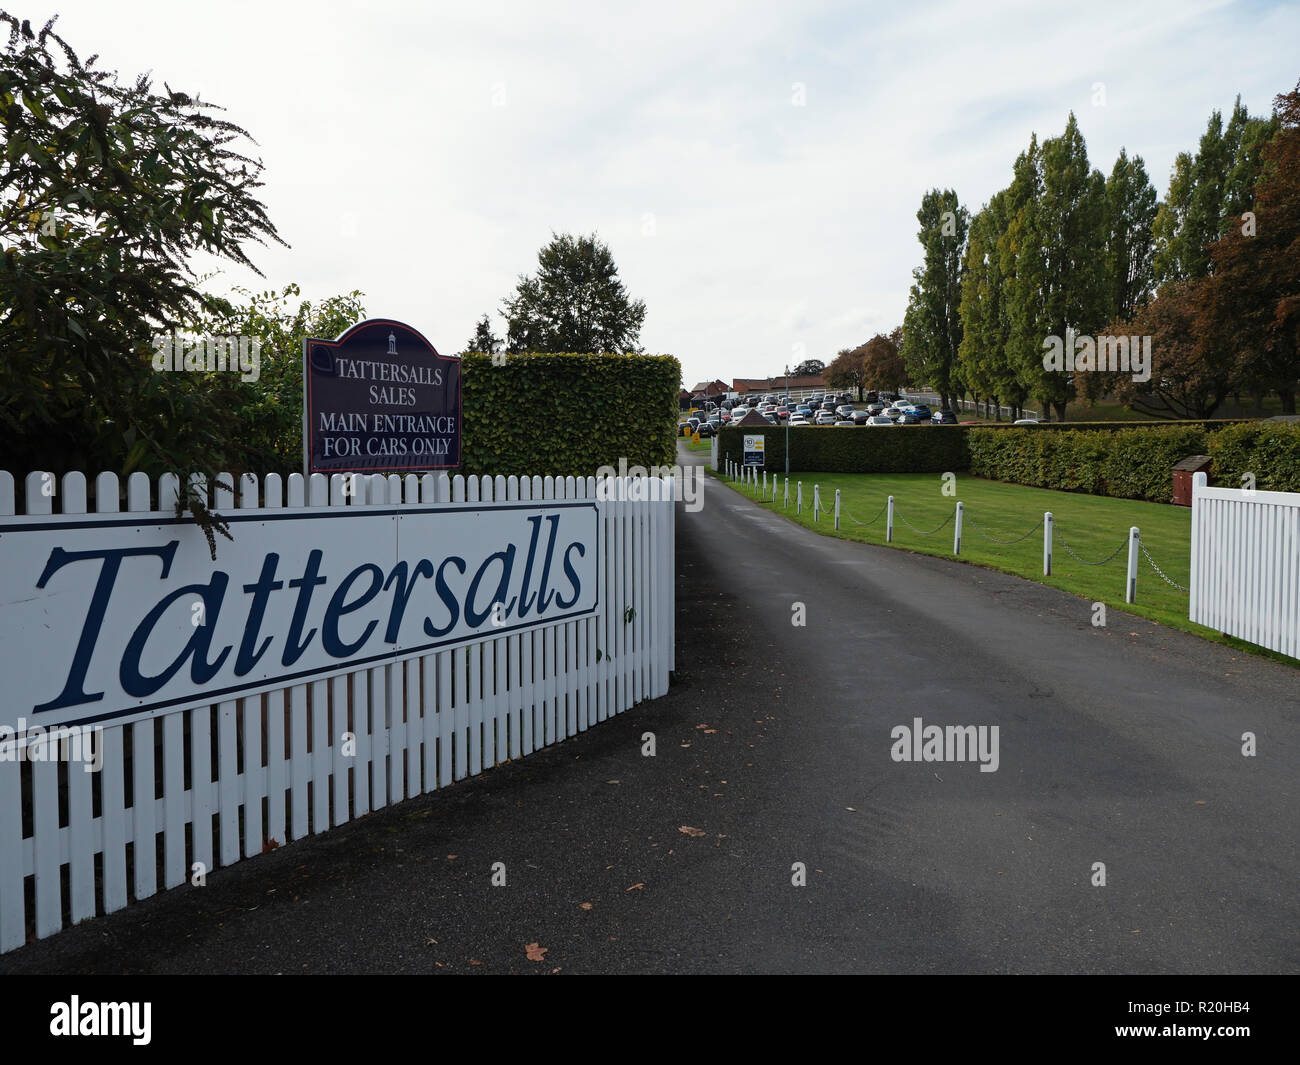 Tattersalls Newmarket Headquarters - World famous bloodstock auction house. Tattersalls Auctioneers, Terrace House, Newmarket, Suffolk, England - Stock Image